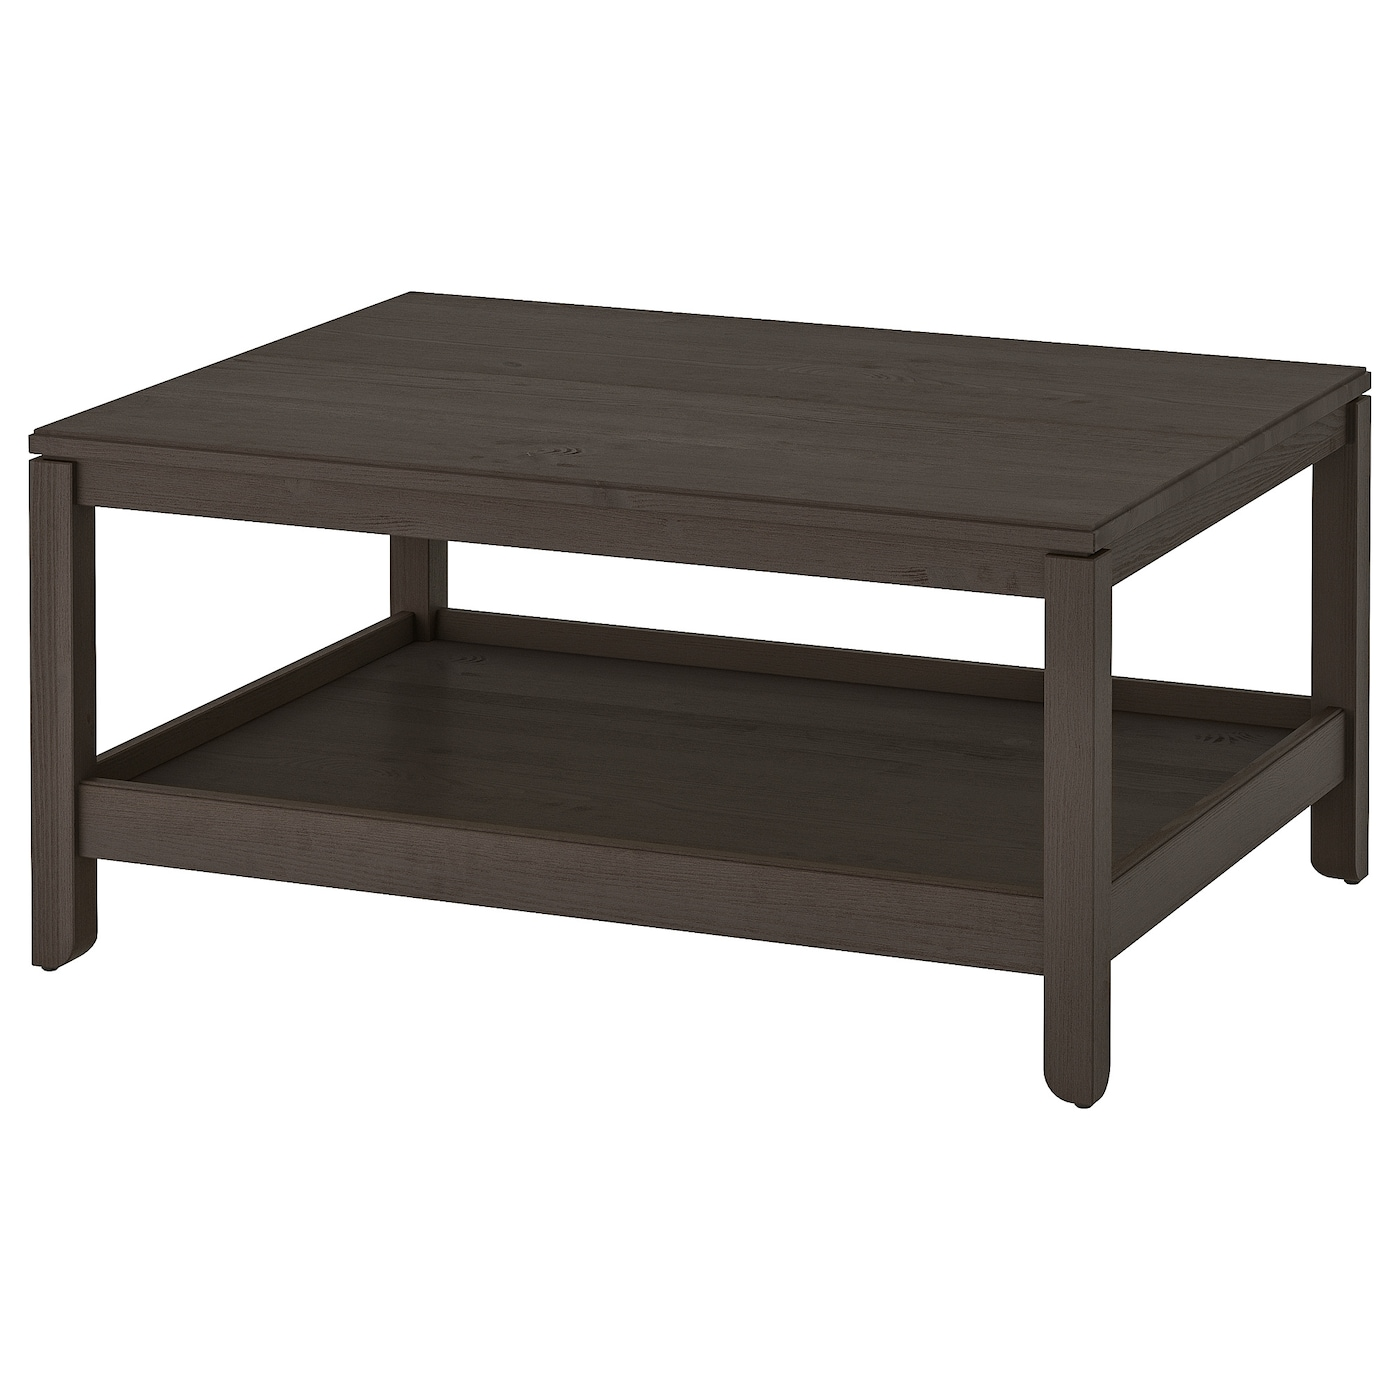 Havsta Coffee Table Dark Brown 39 3 8x29 1 2 Ikea